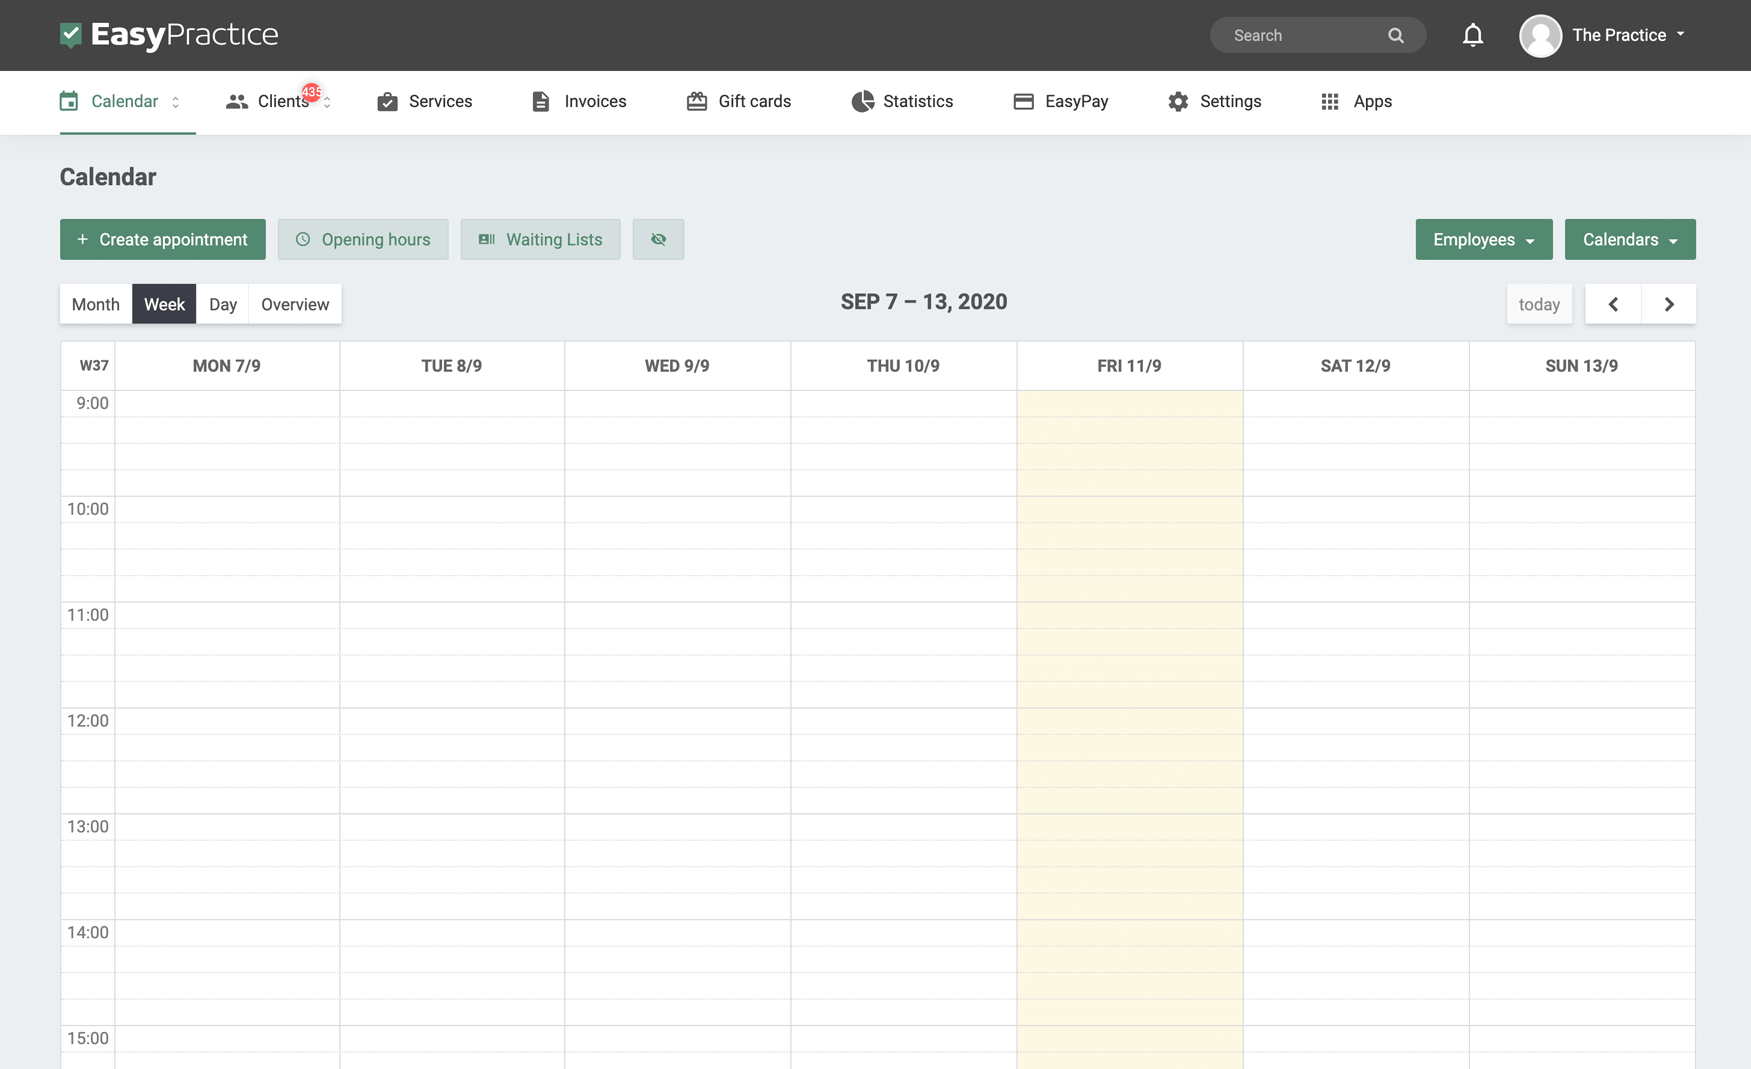 Screenshot of EasyPractice calendar